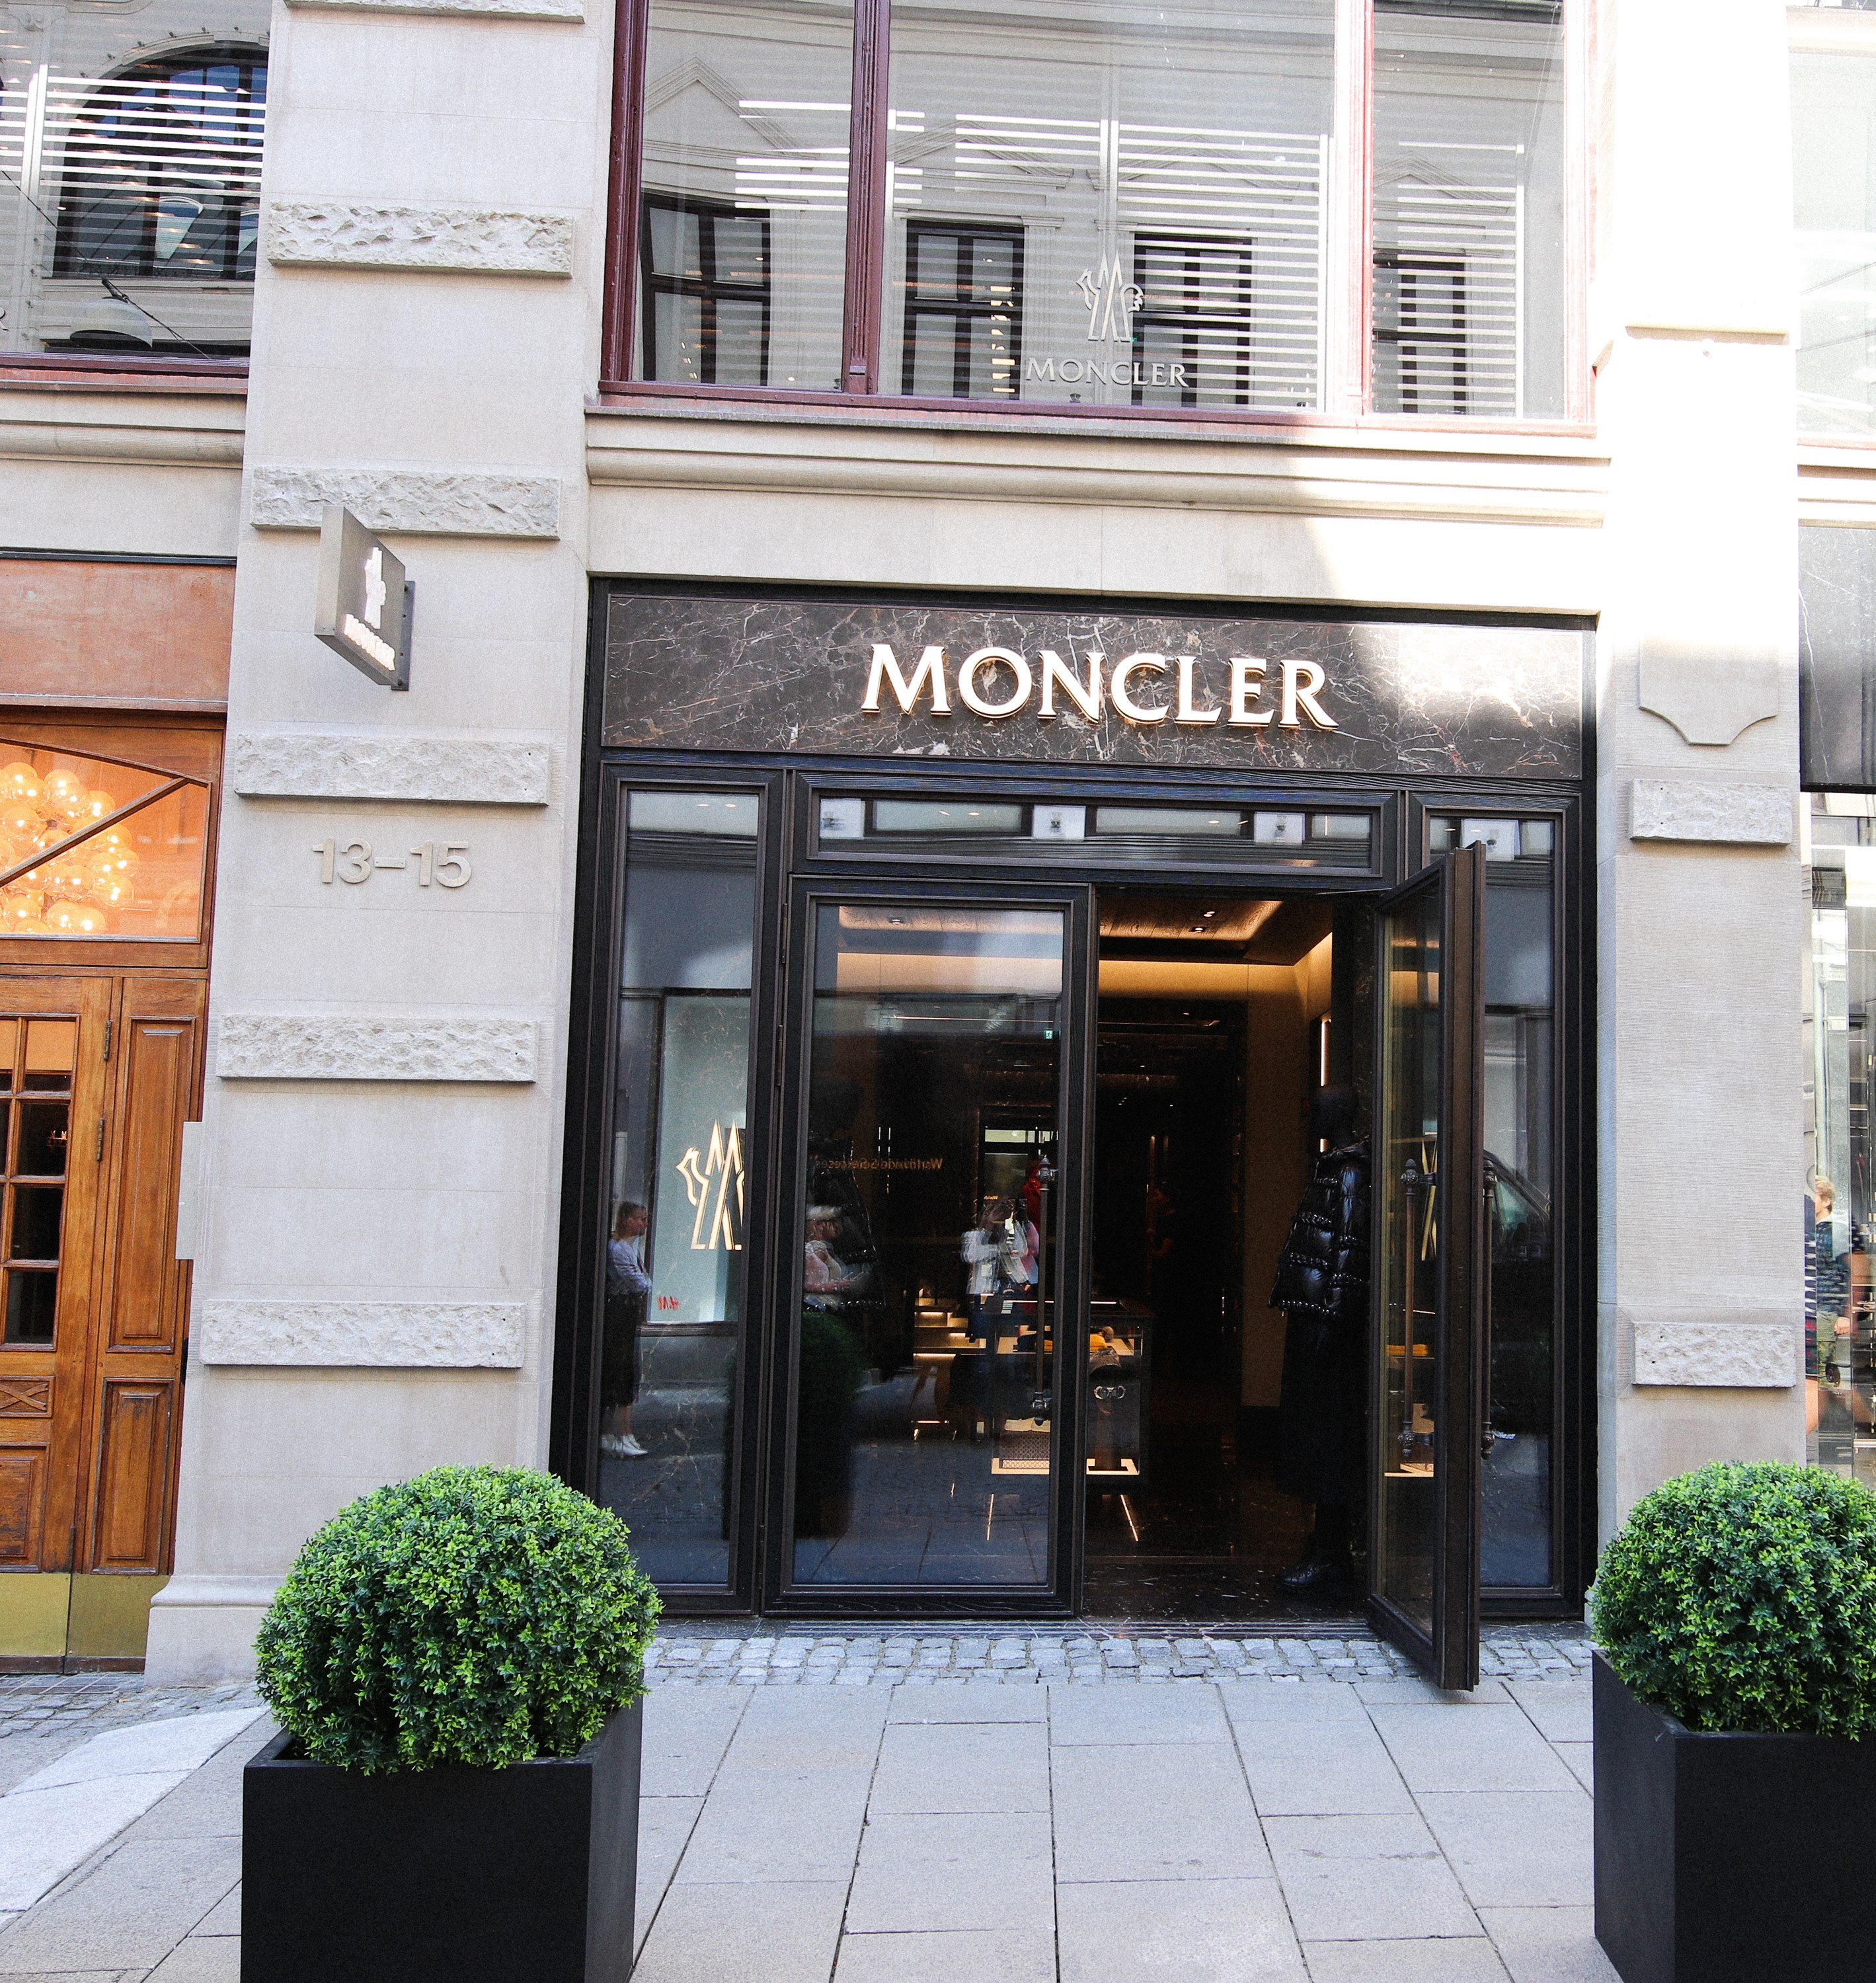 Moncler with their first flagship store in Oslo